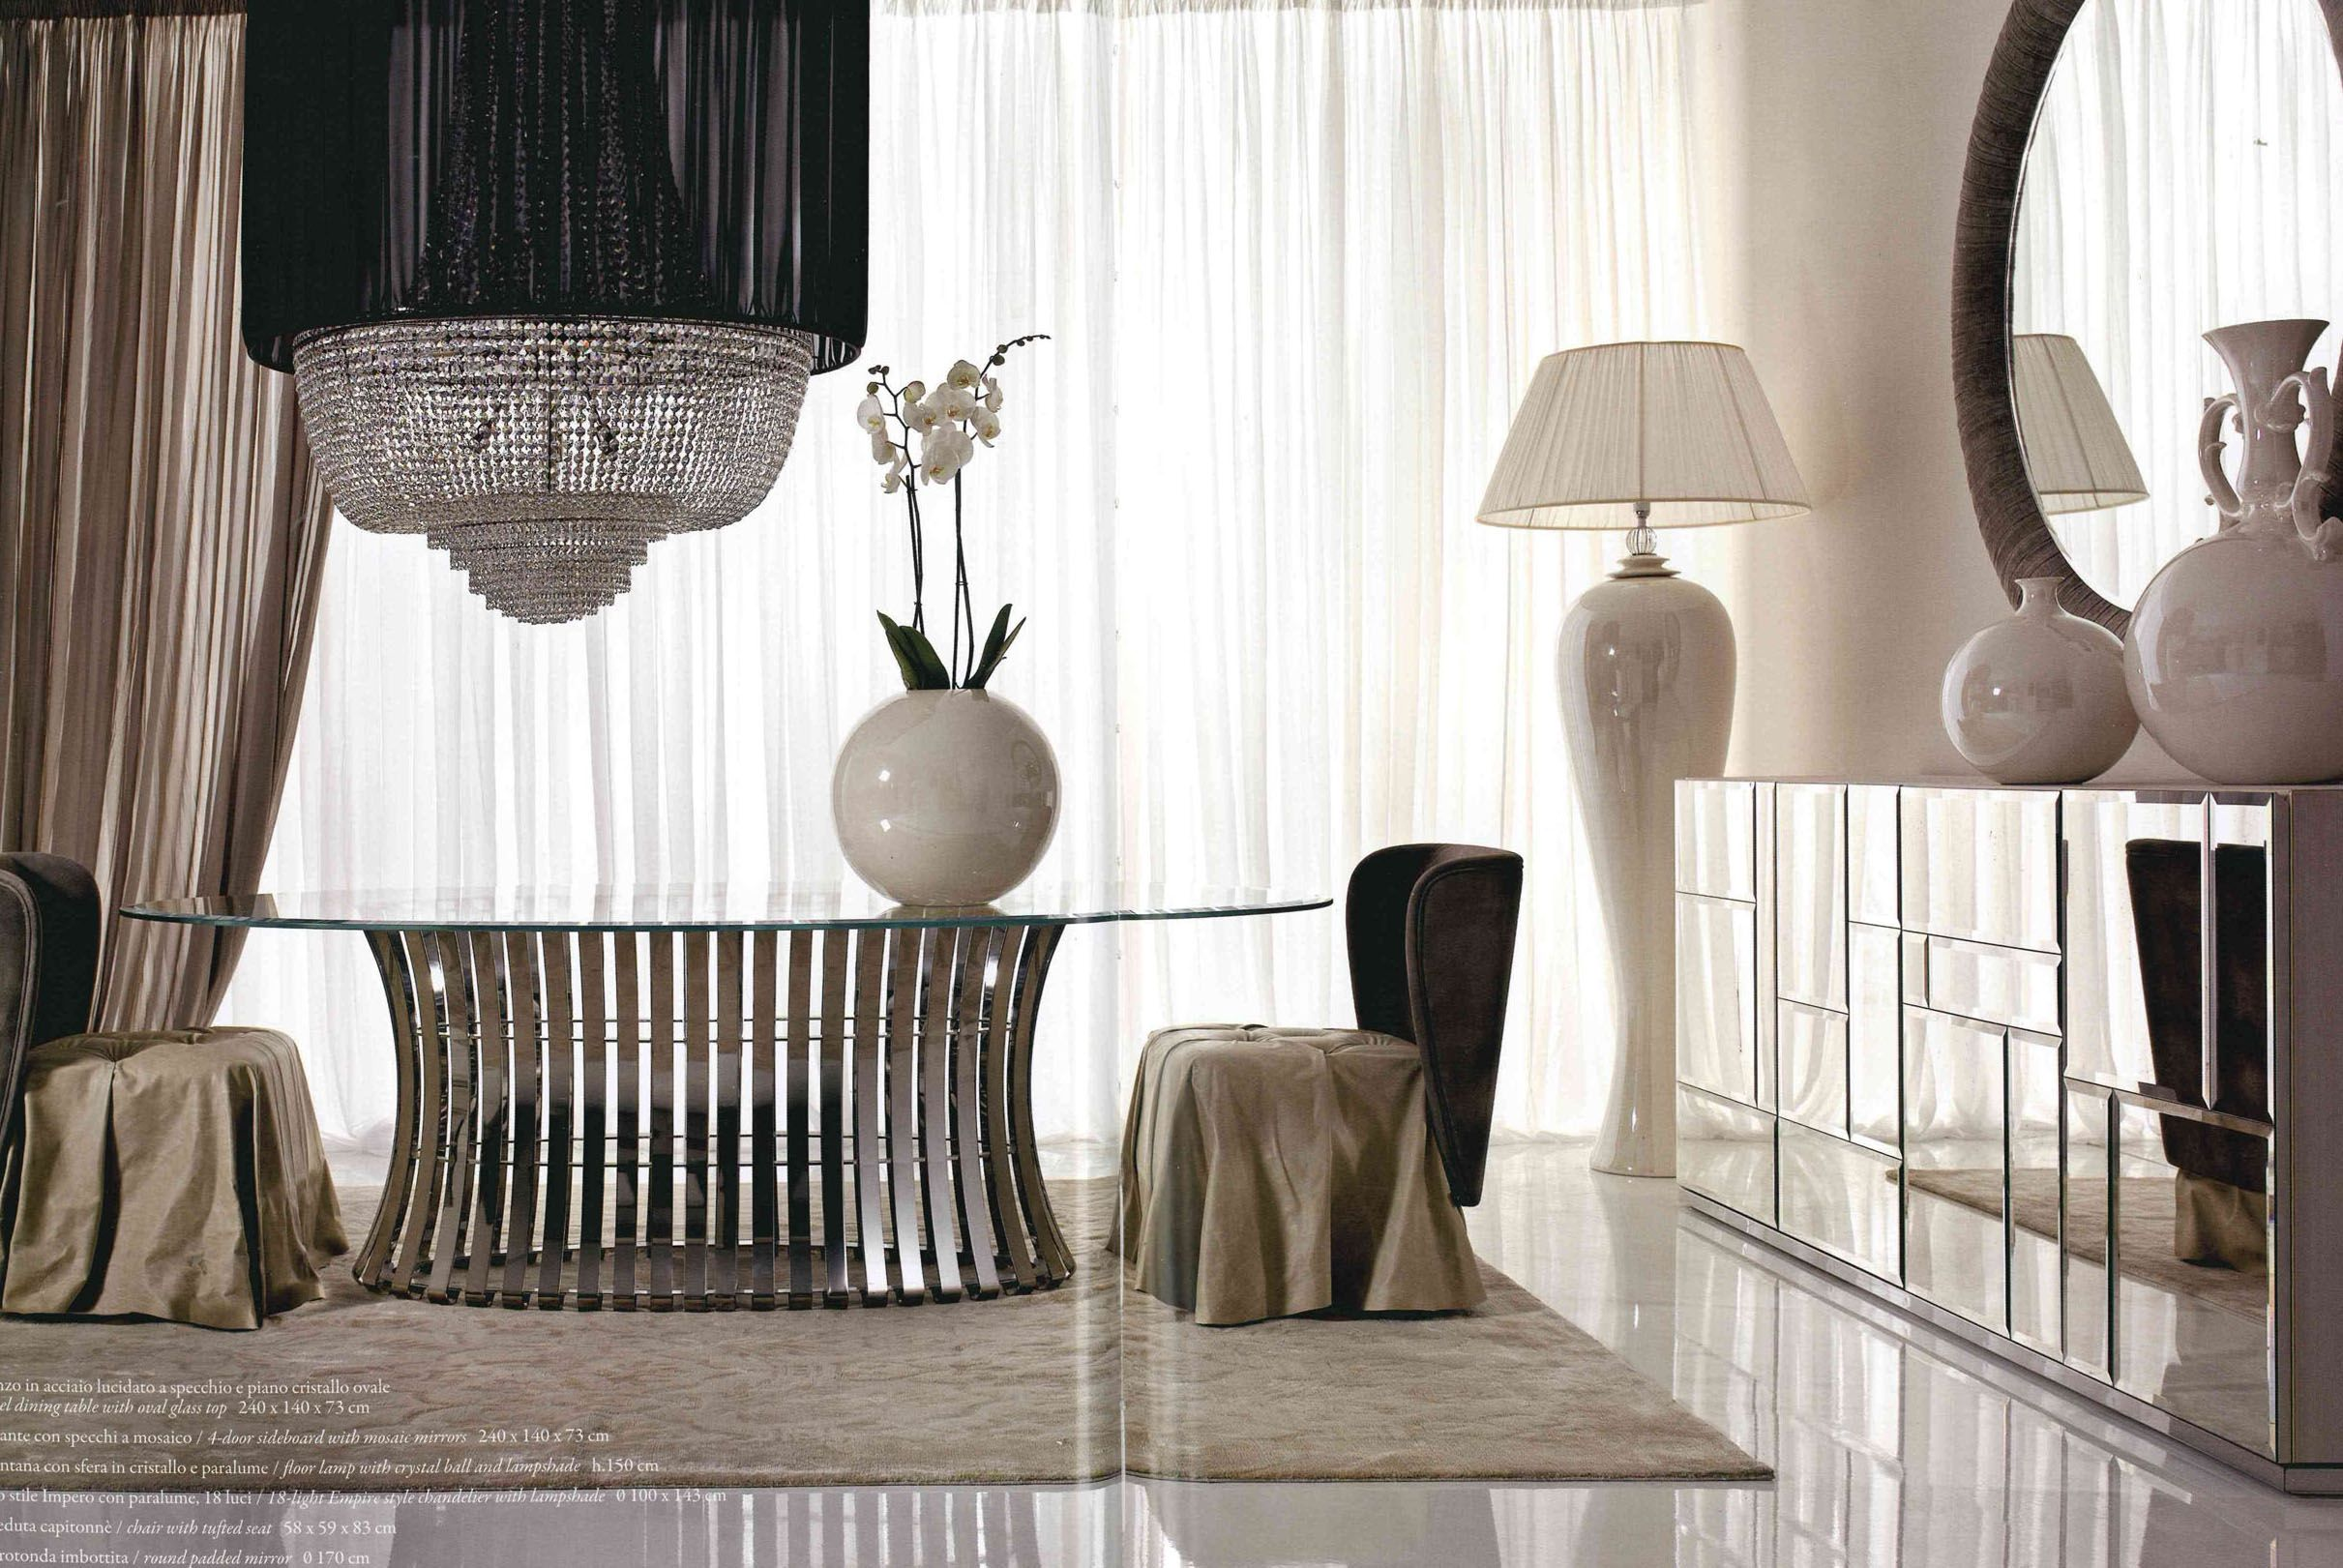 Arredamento Made In Italy.Dolfi Arredamento Glamour Interior Design Italian Business